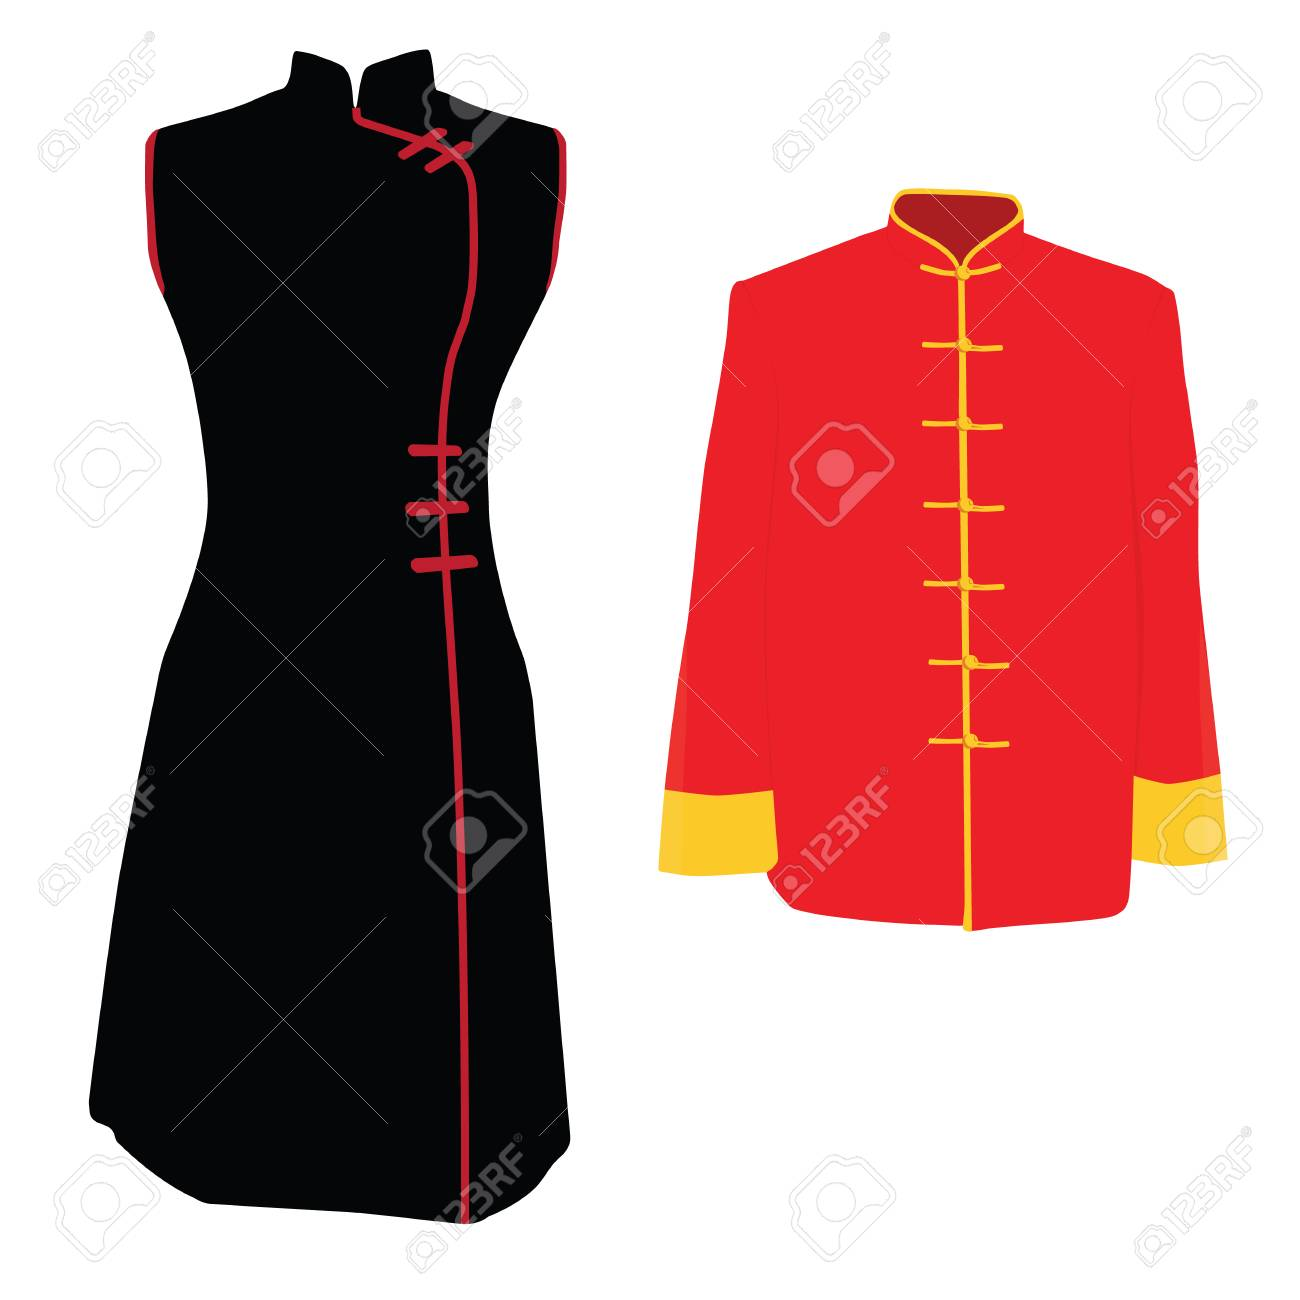 Raster Illustration Homme Chinois Costume Traditionnel De Femme